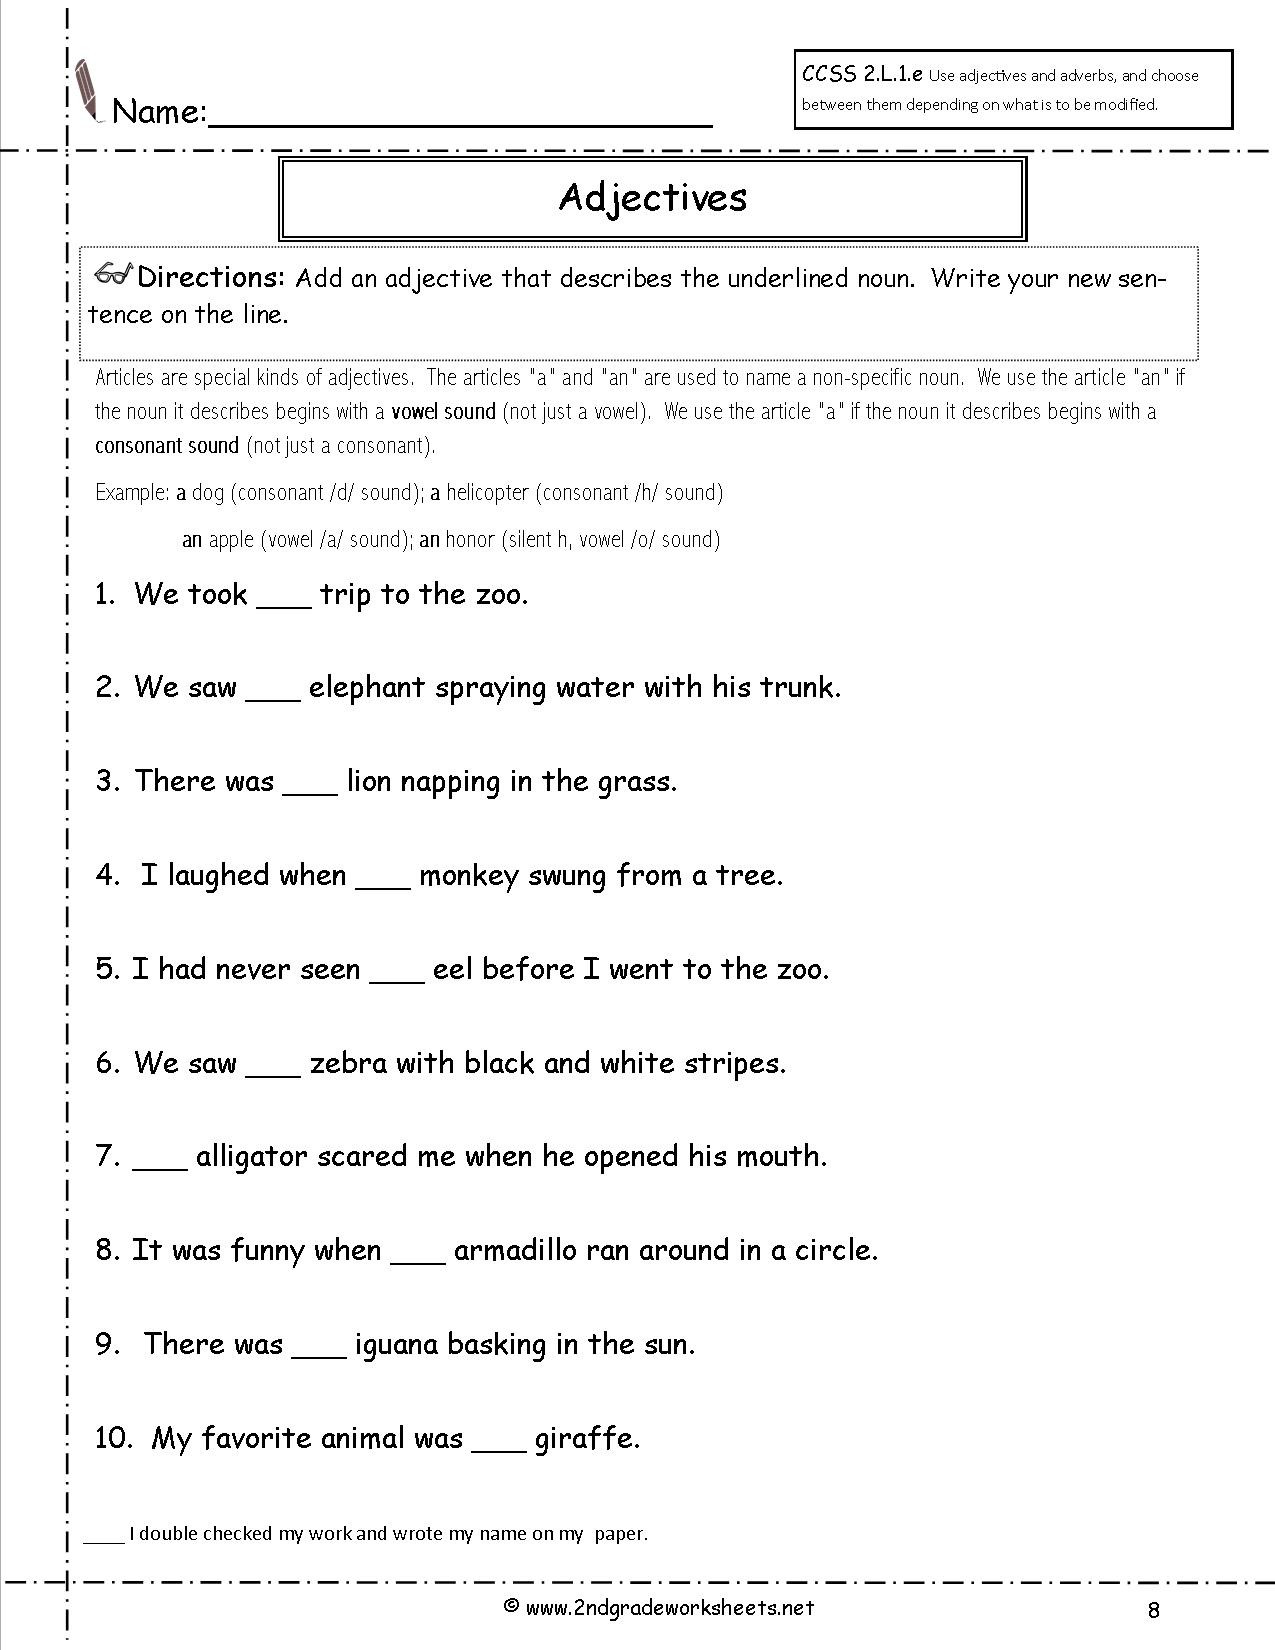 Free Language Grammar Worksheets And Printouts 2nd Grade